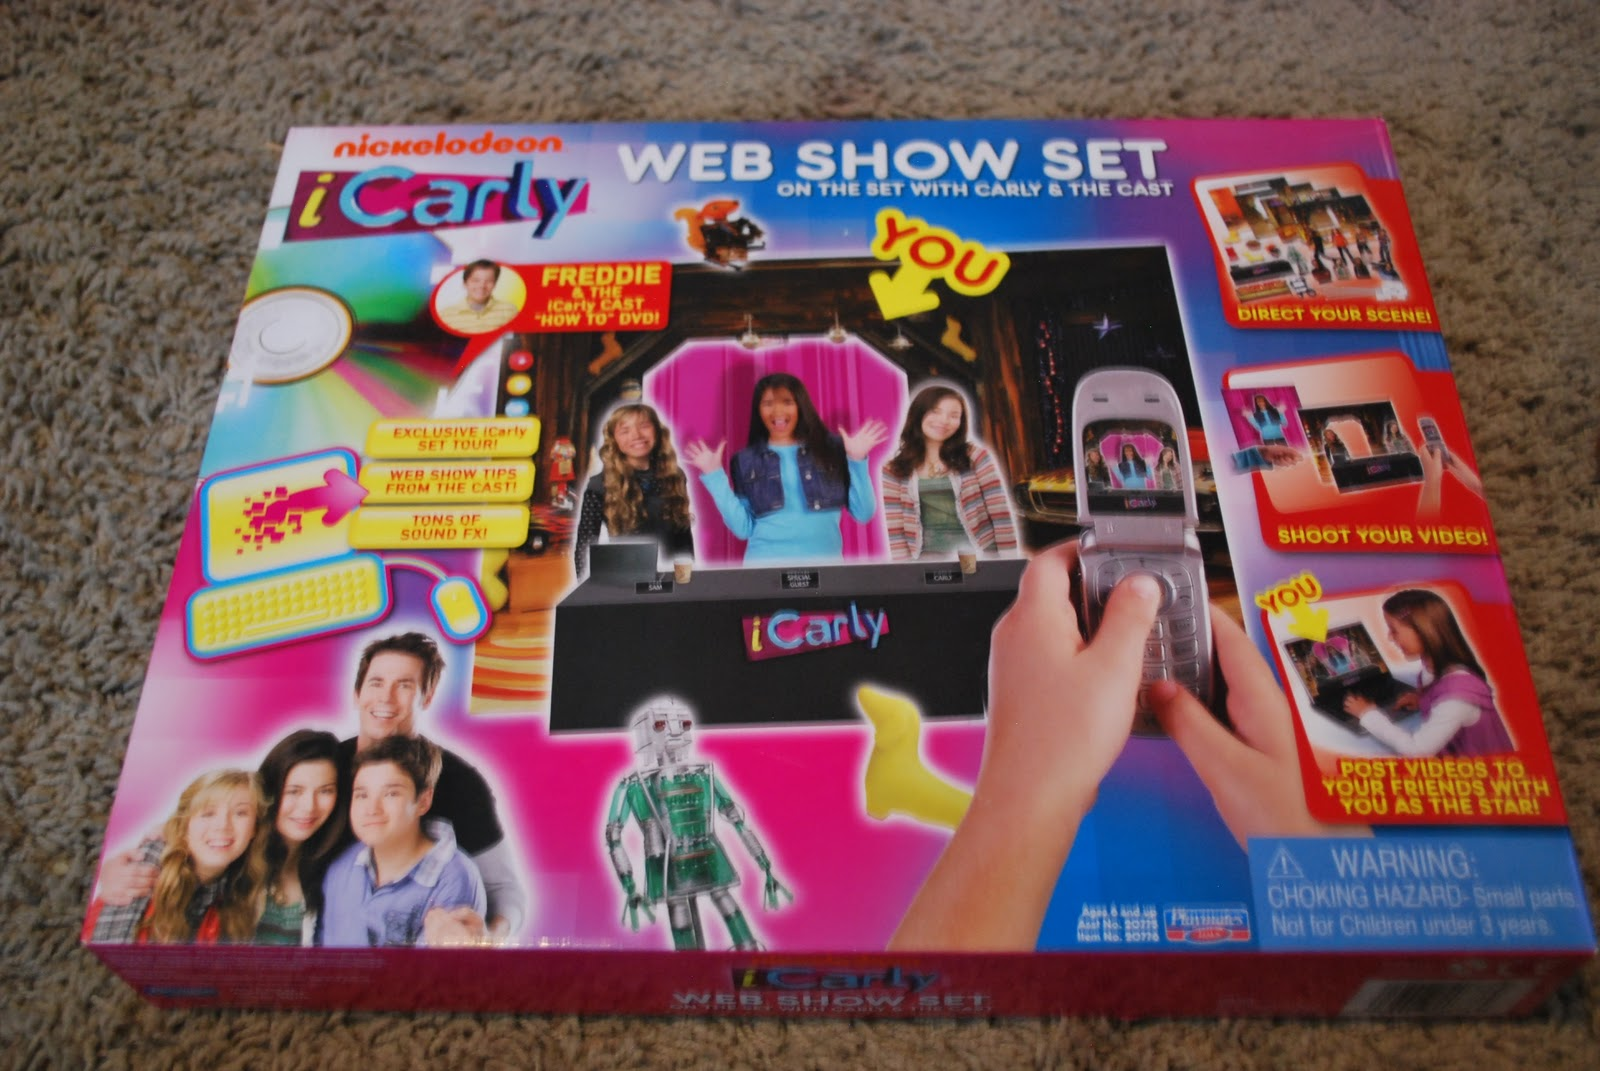 the last thing we got was the web show set